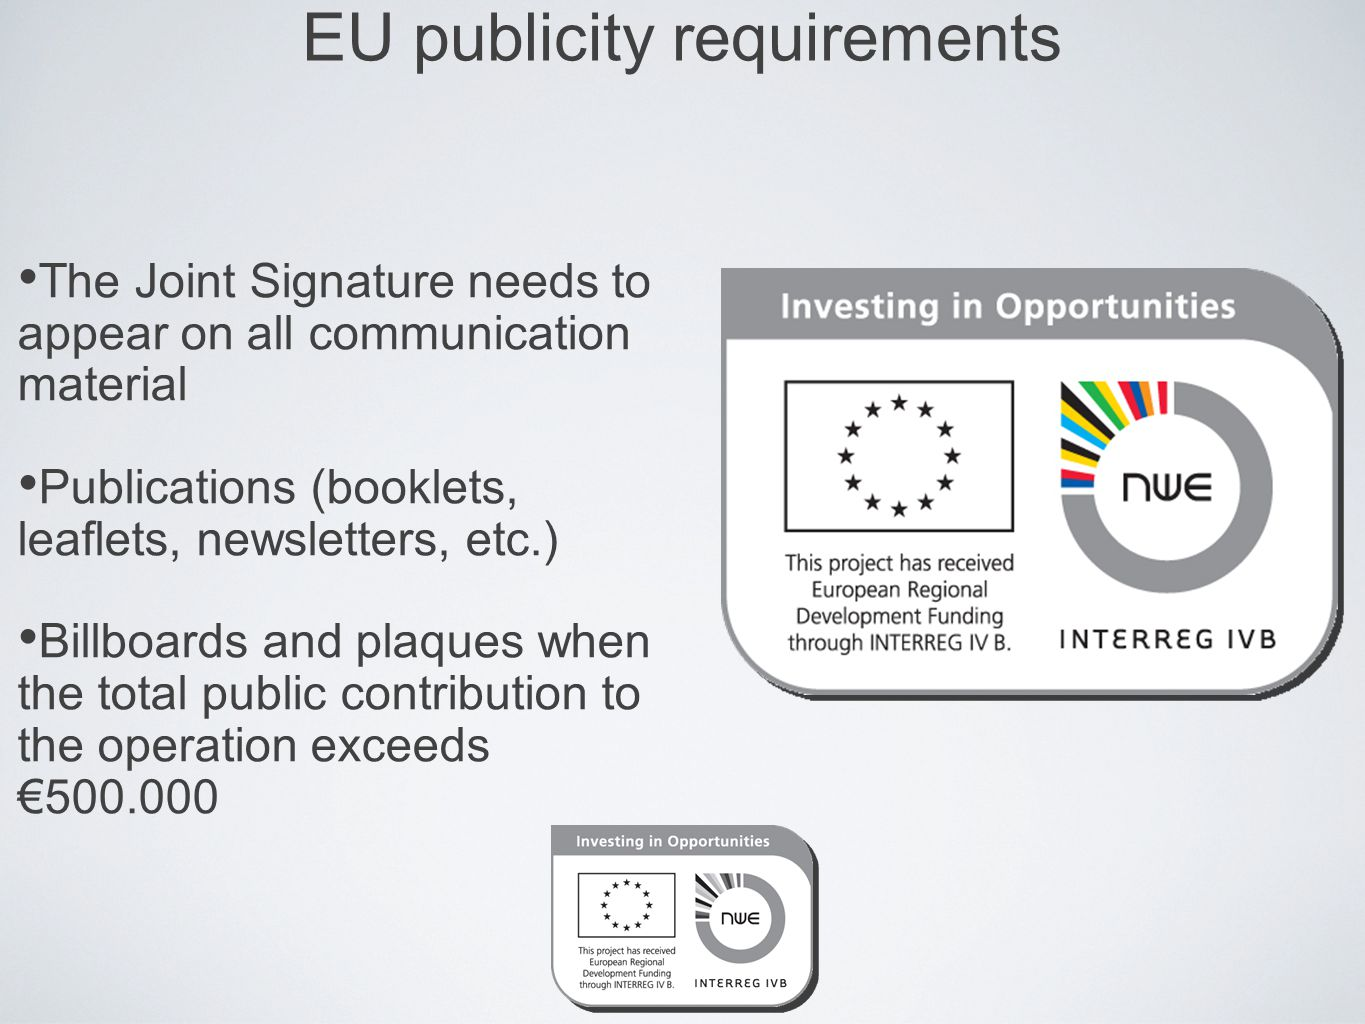 EU publicity requirements The Joint Signature needs to appear on all communication material Publications (booklets, leaflets, newsletters, etc.) Billboards and plaques when the total public contribution to the operation exceeds €